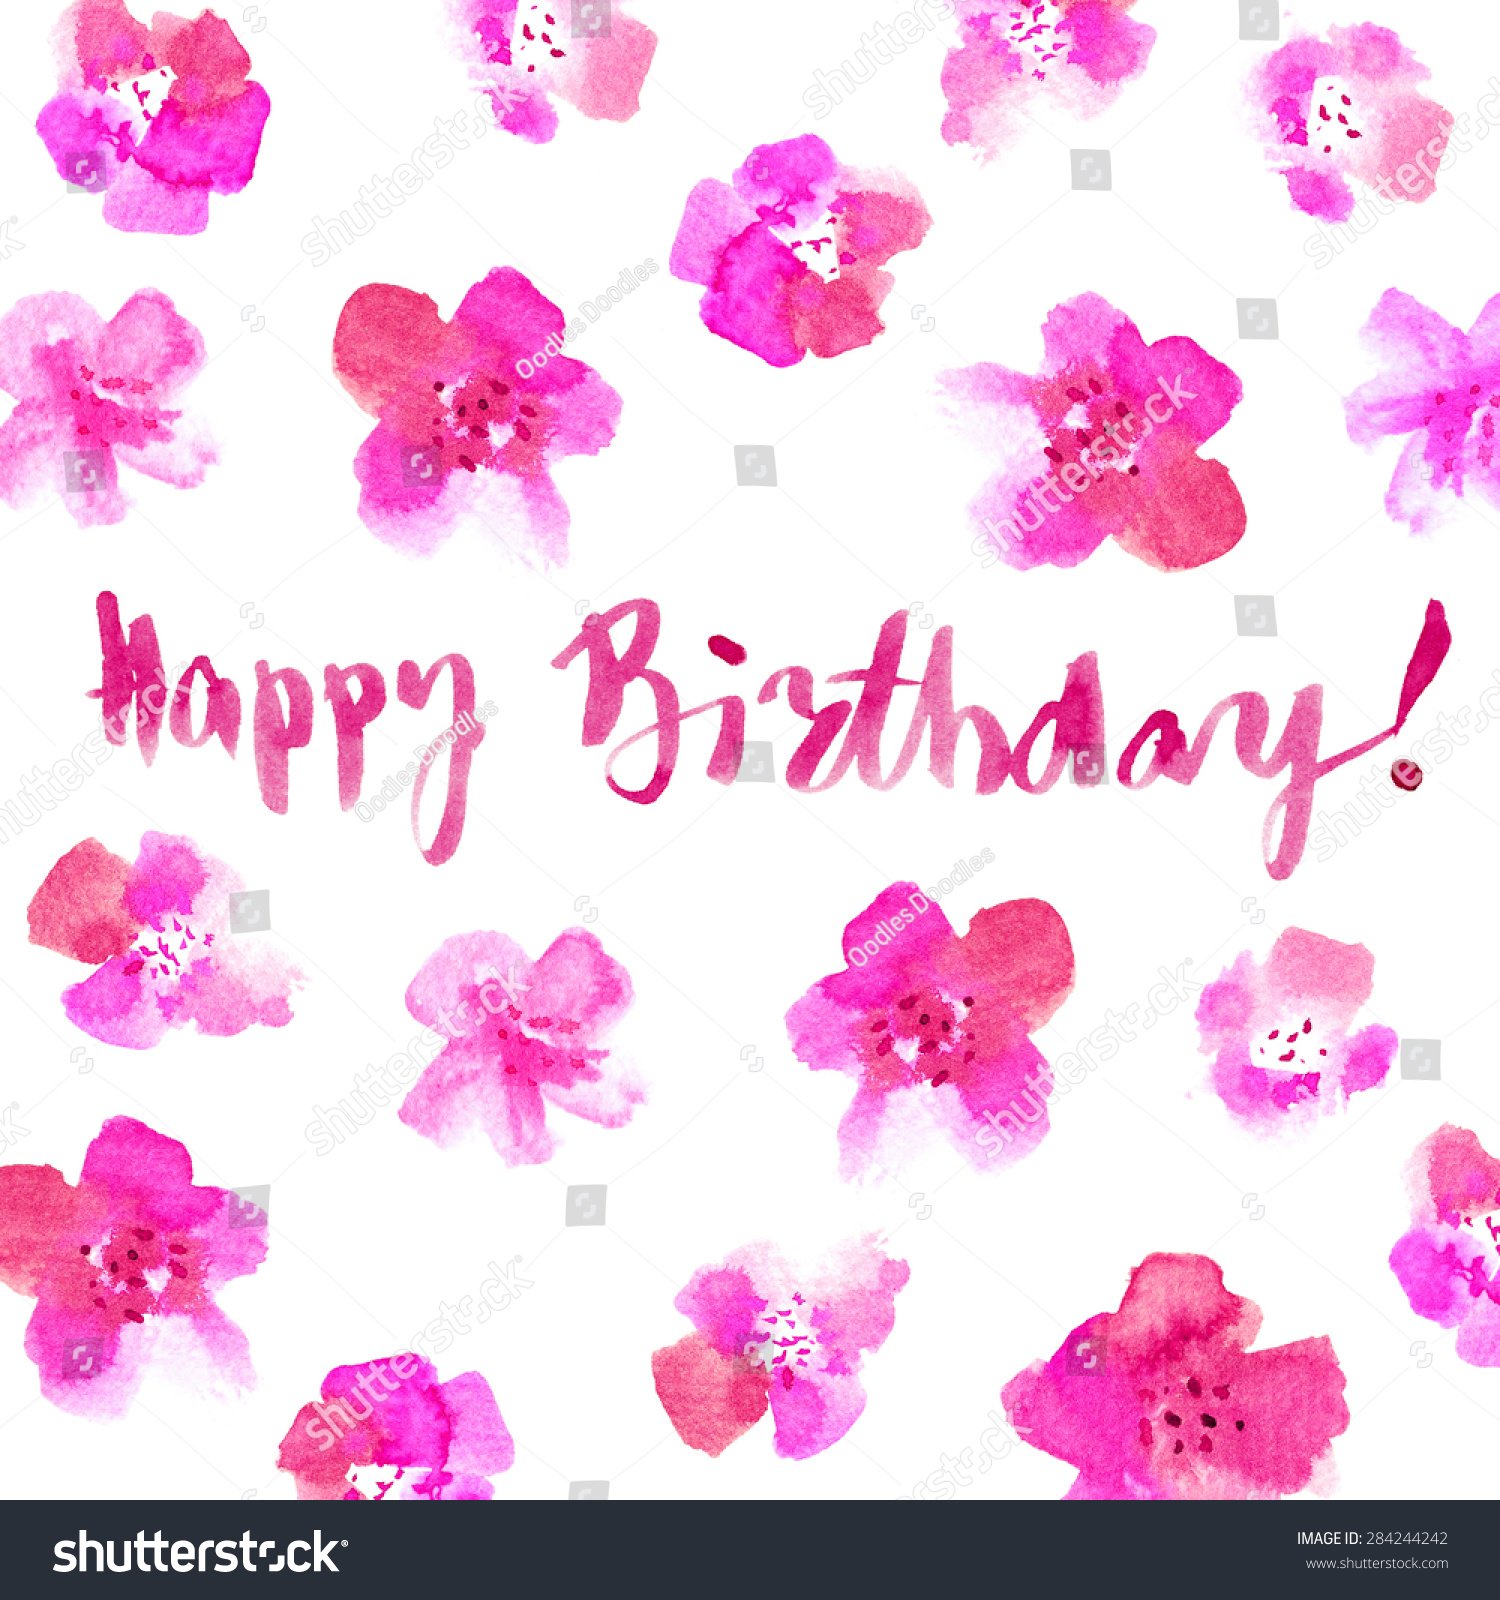 Floral Happy Birthday Card Hand Painted Stock Illustration